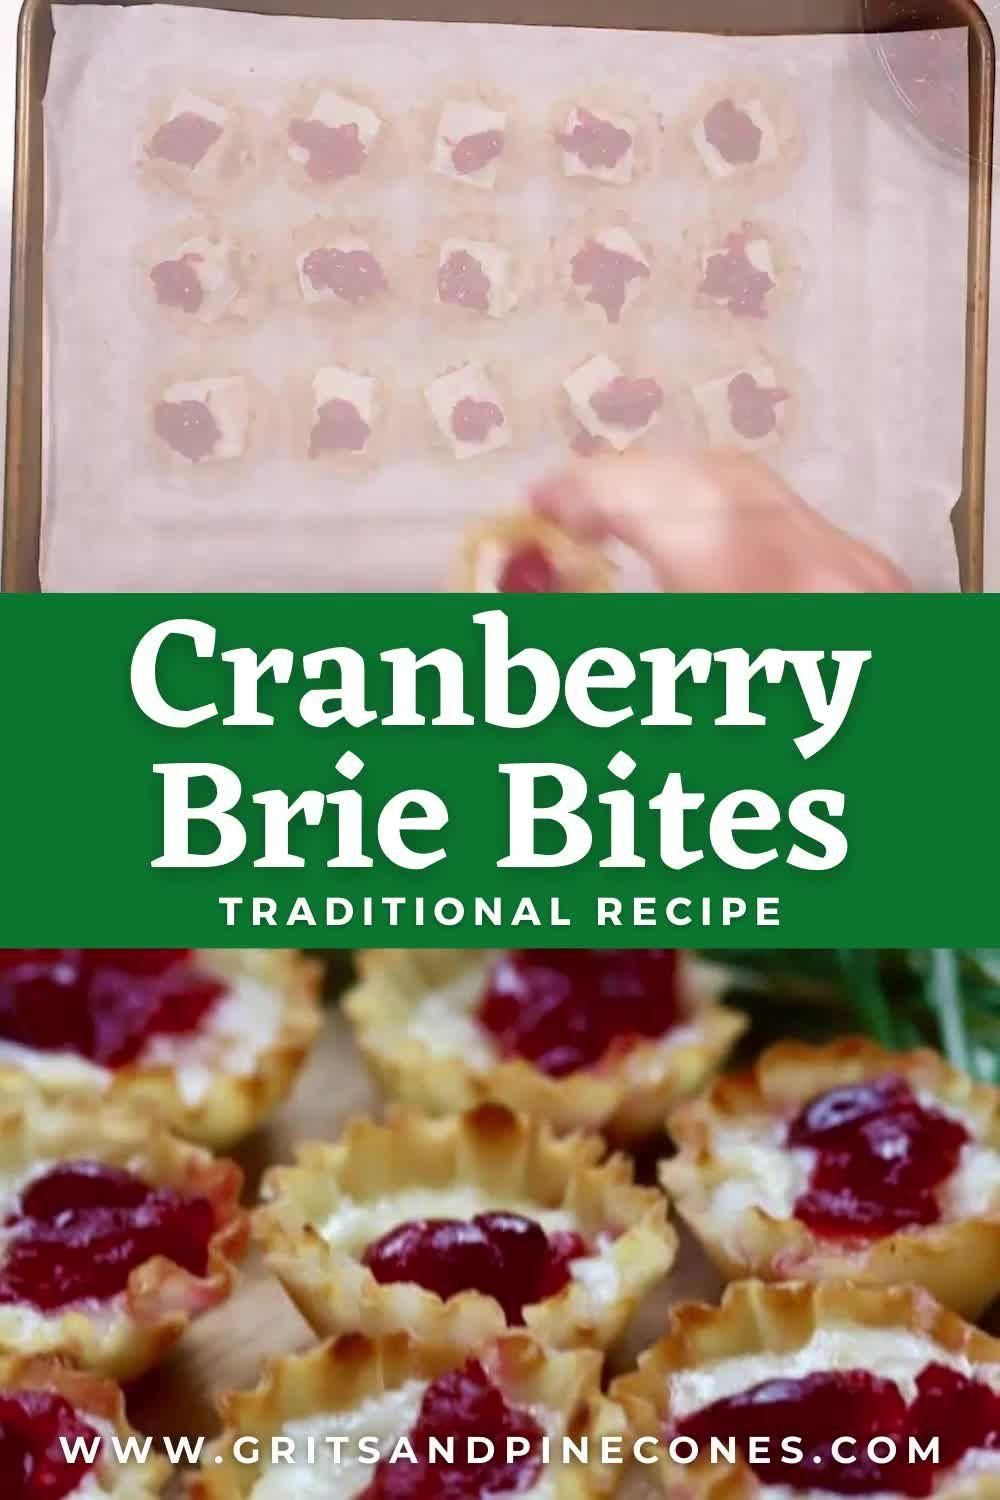 3-Ingredient Easy Cranberry Brie Bites Recipe - Grits and Pinecones -   23 thanksgiving recipes videos appetizers desserts ideas